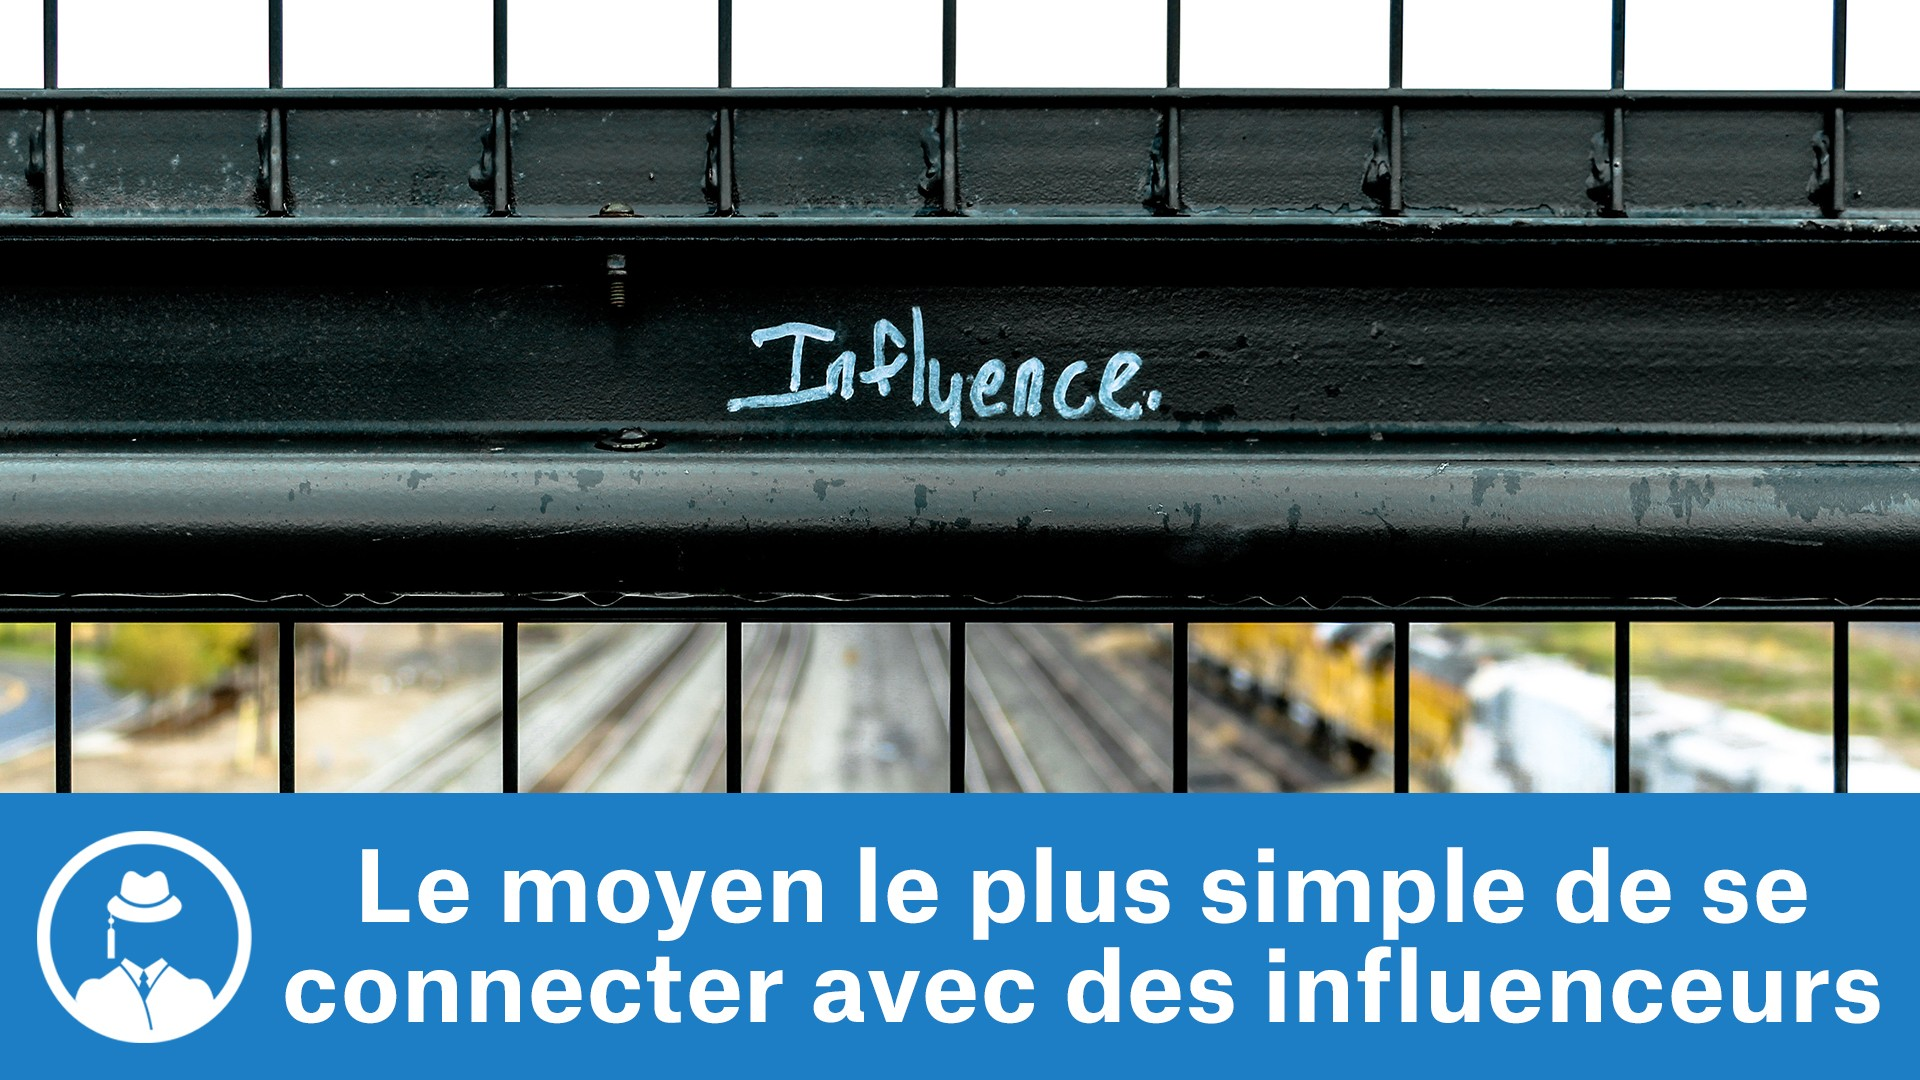 Le moyen le plus simple de se connecter avec des influenceurs #GrowthHacking #WebMarketing #FormationGrowthHacking #CentreDeFormationFrance #TunnelAARRR #AARRR #SocialMedia #CommunityManagement #SEO #MarketingDigital #SiteWeb #influenceur